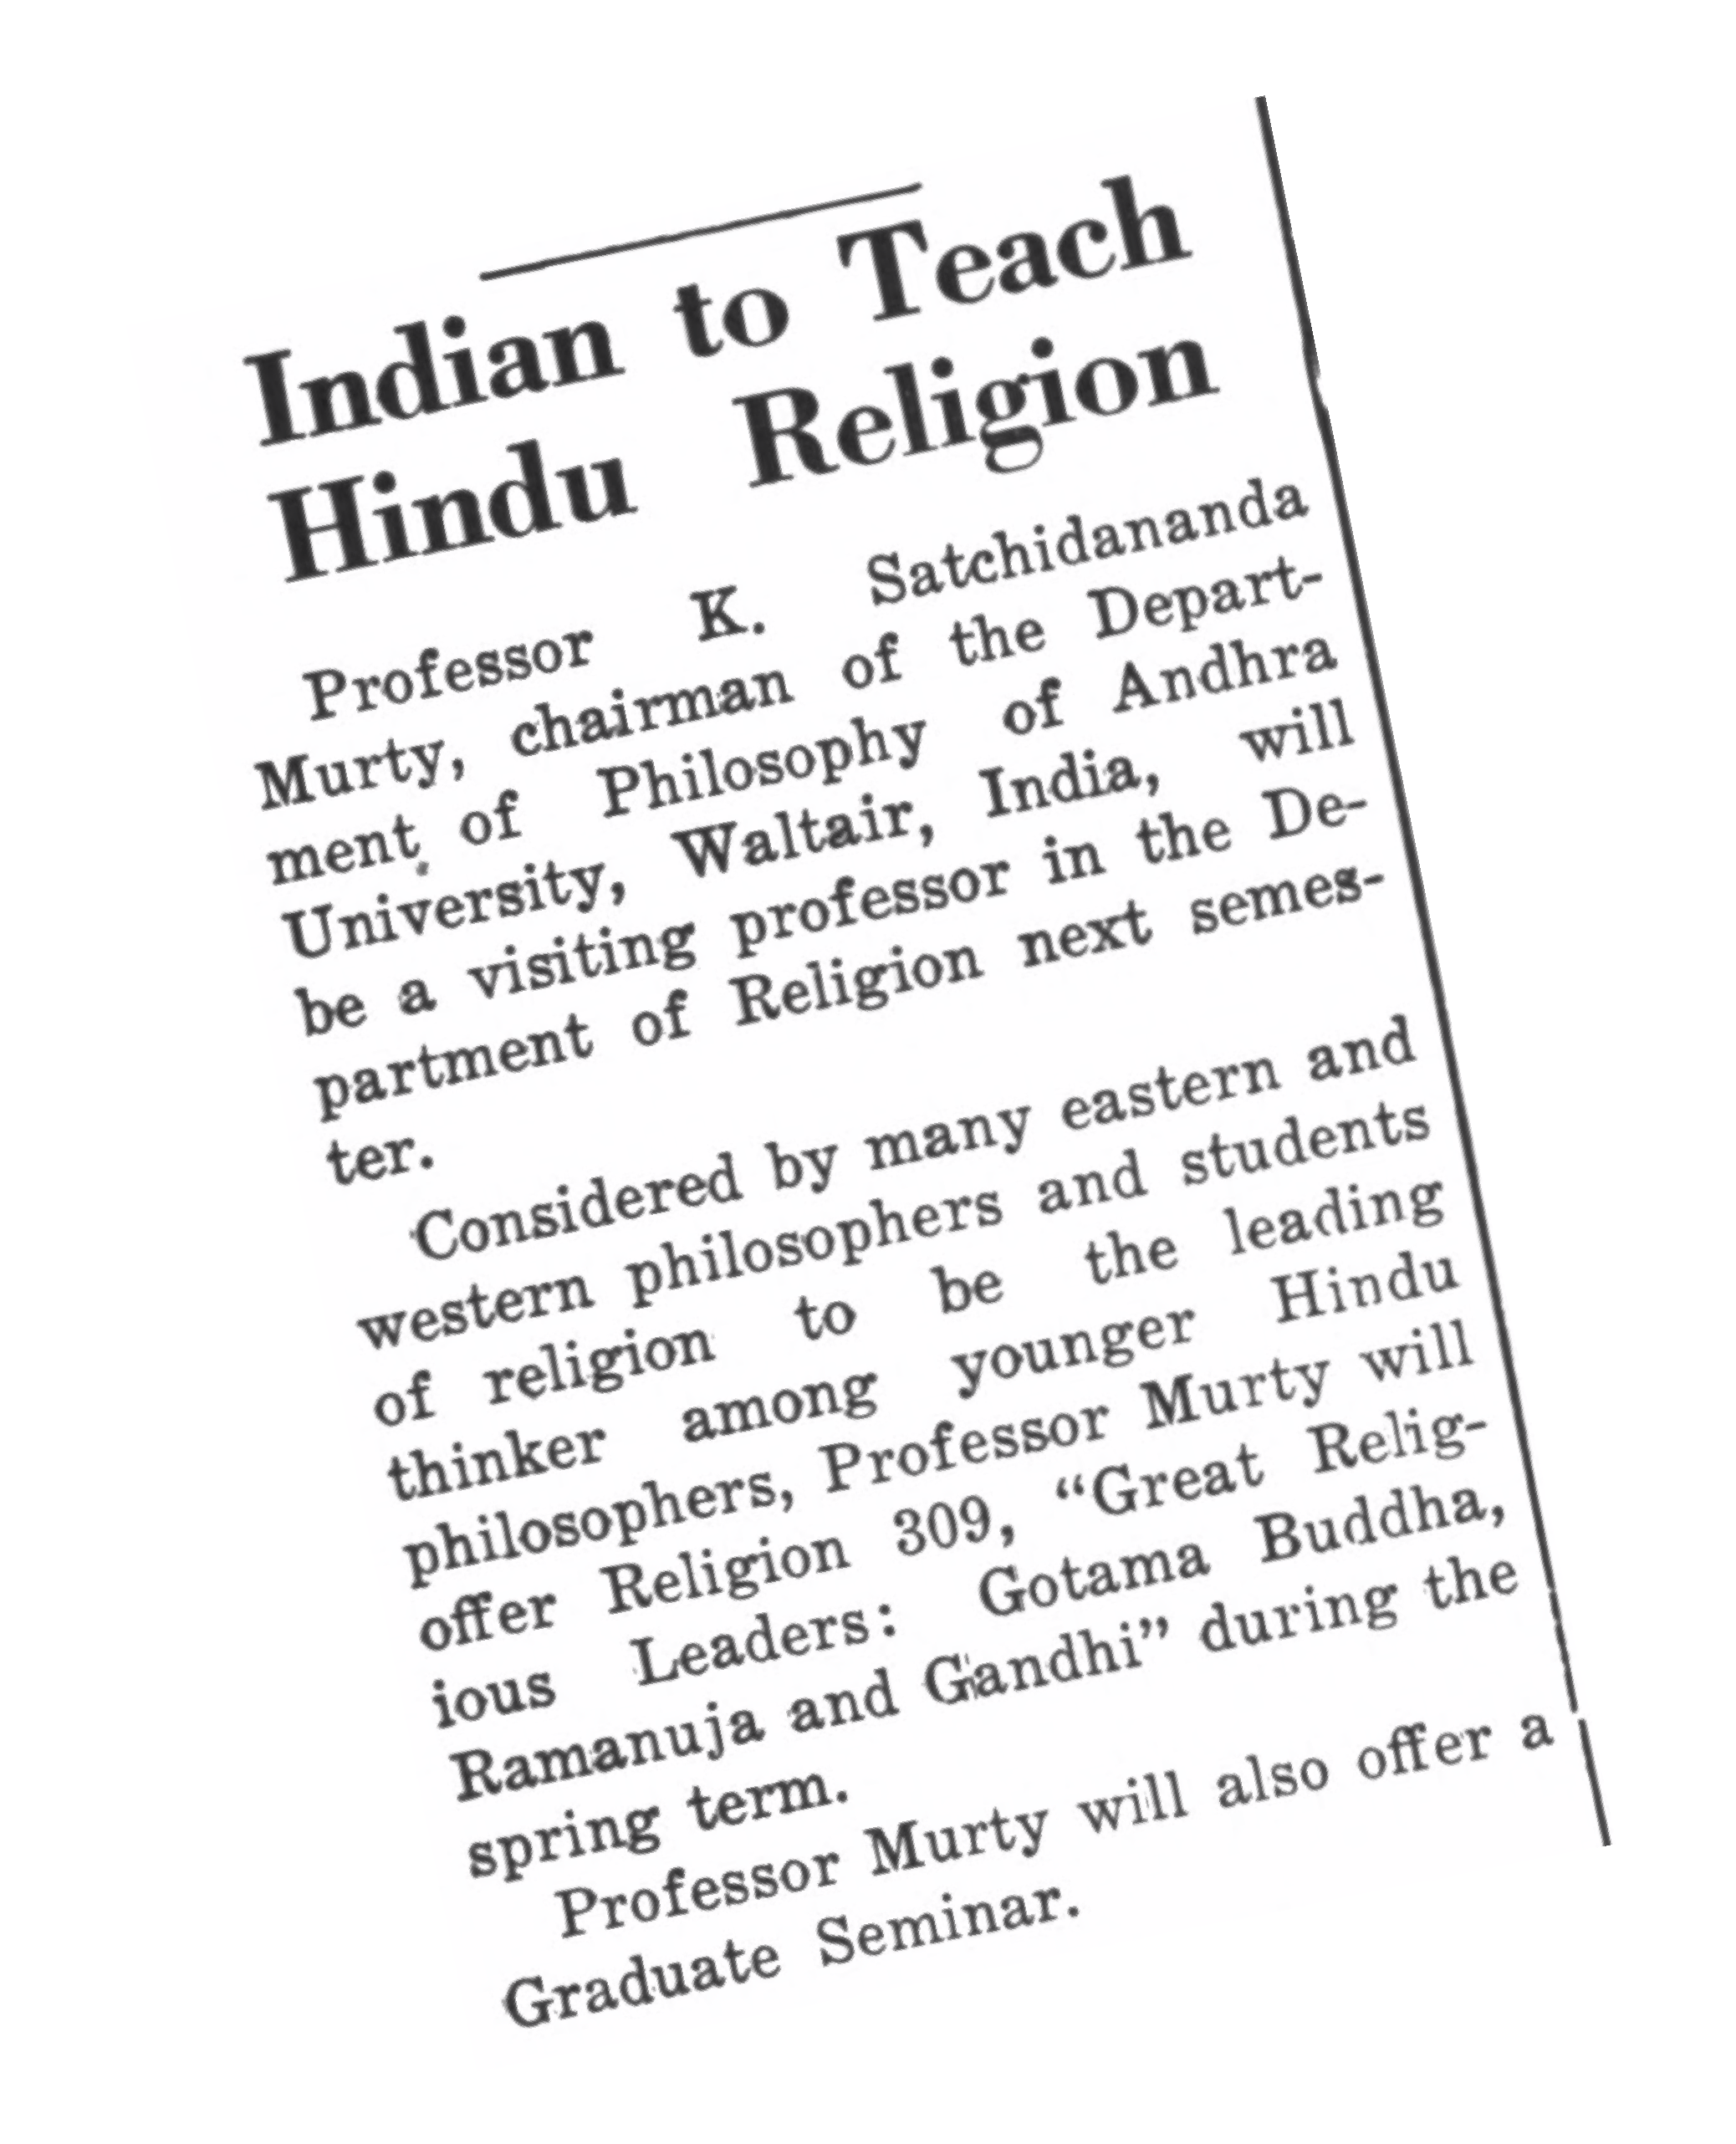 1958 announcement in The Daily Princetonian about new courses on Hinduism.